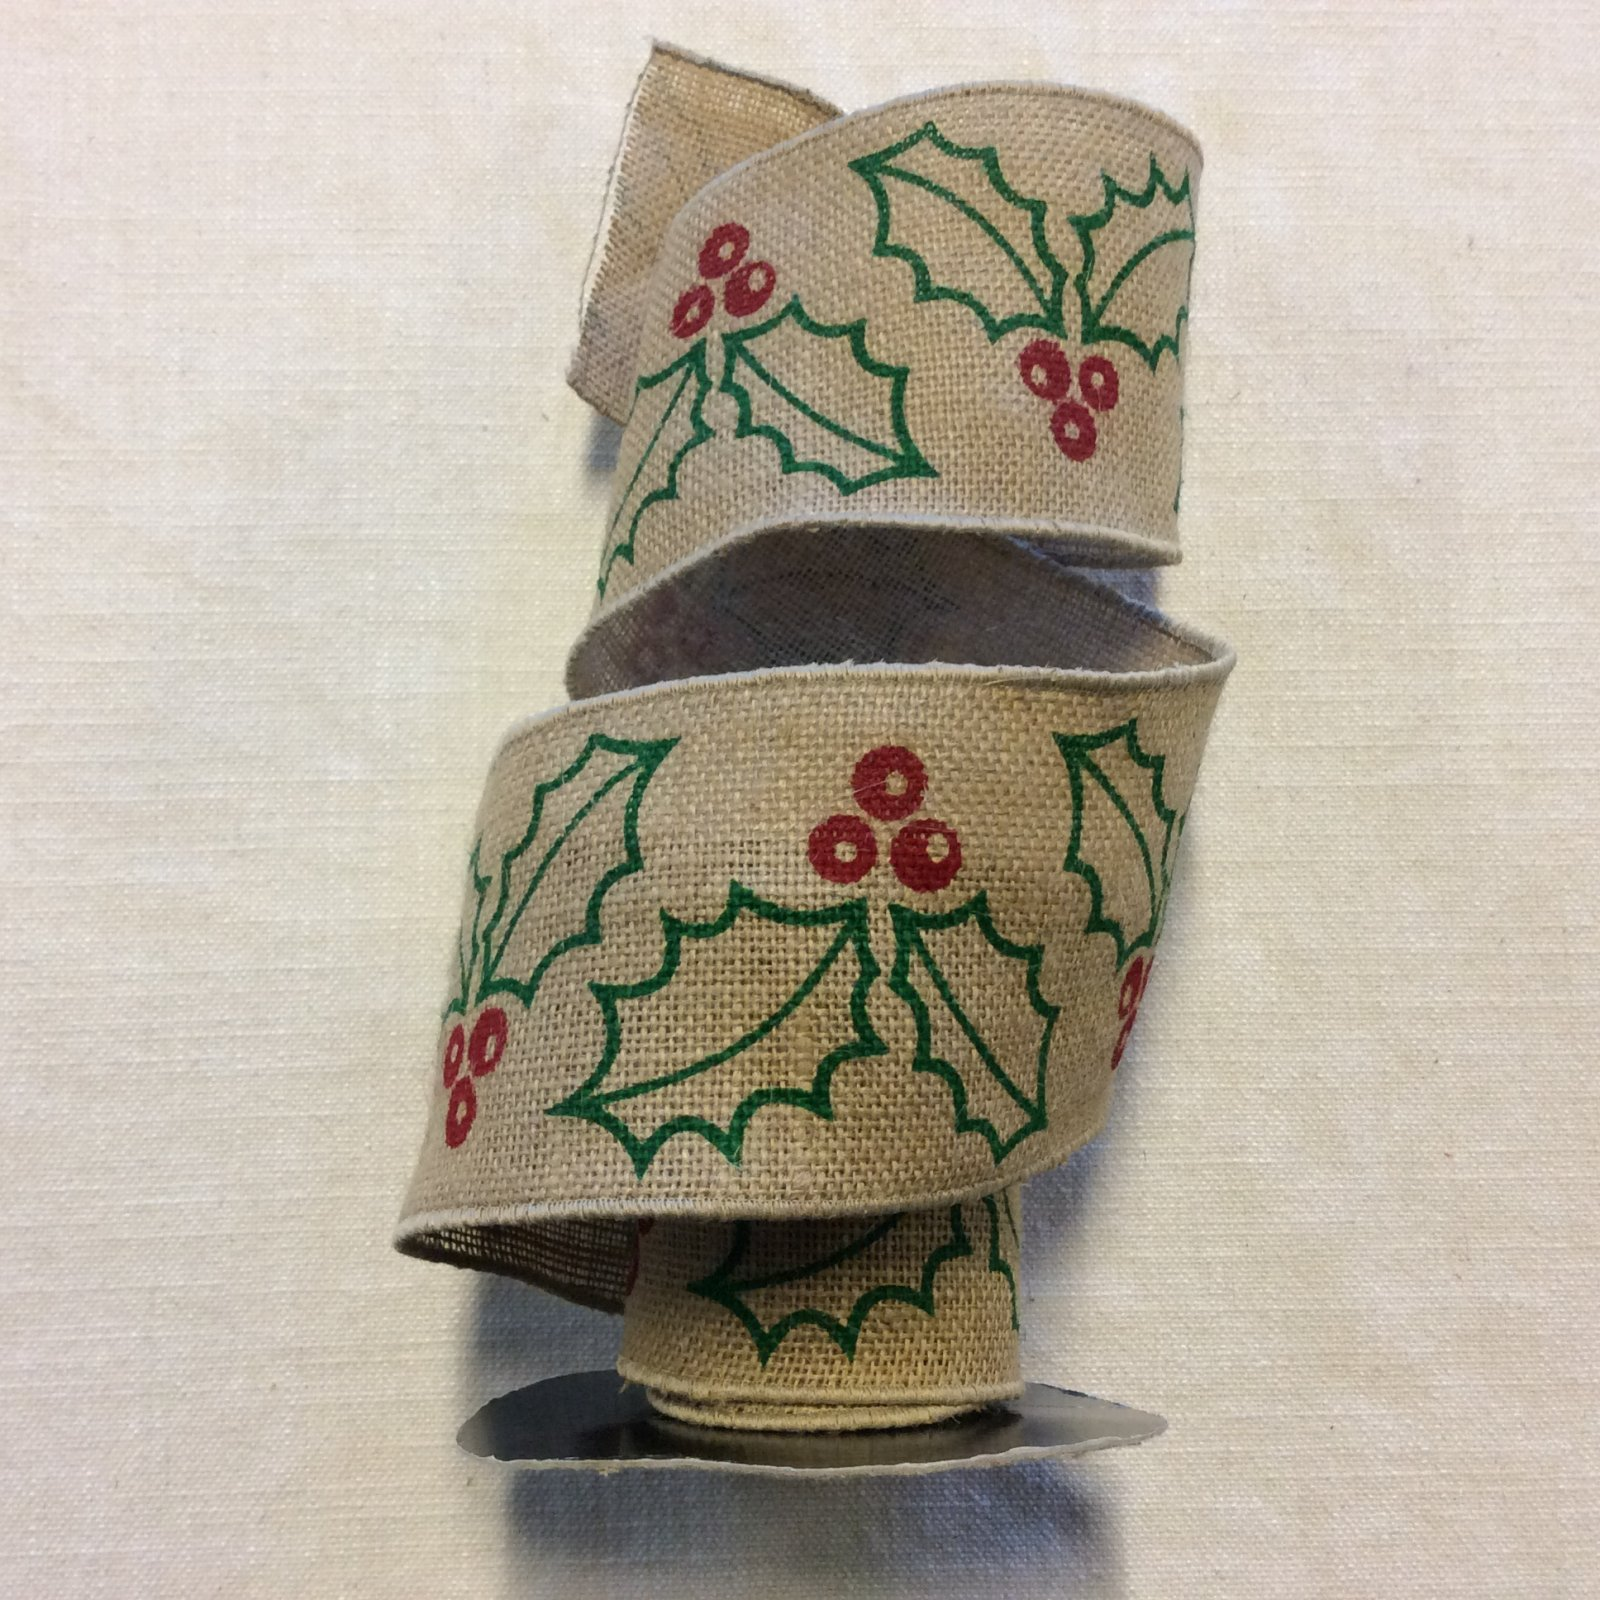 Burlap Printed Holly Berries and Leaves Christmas Wired Ribbon Decor Trim RIB1371